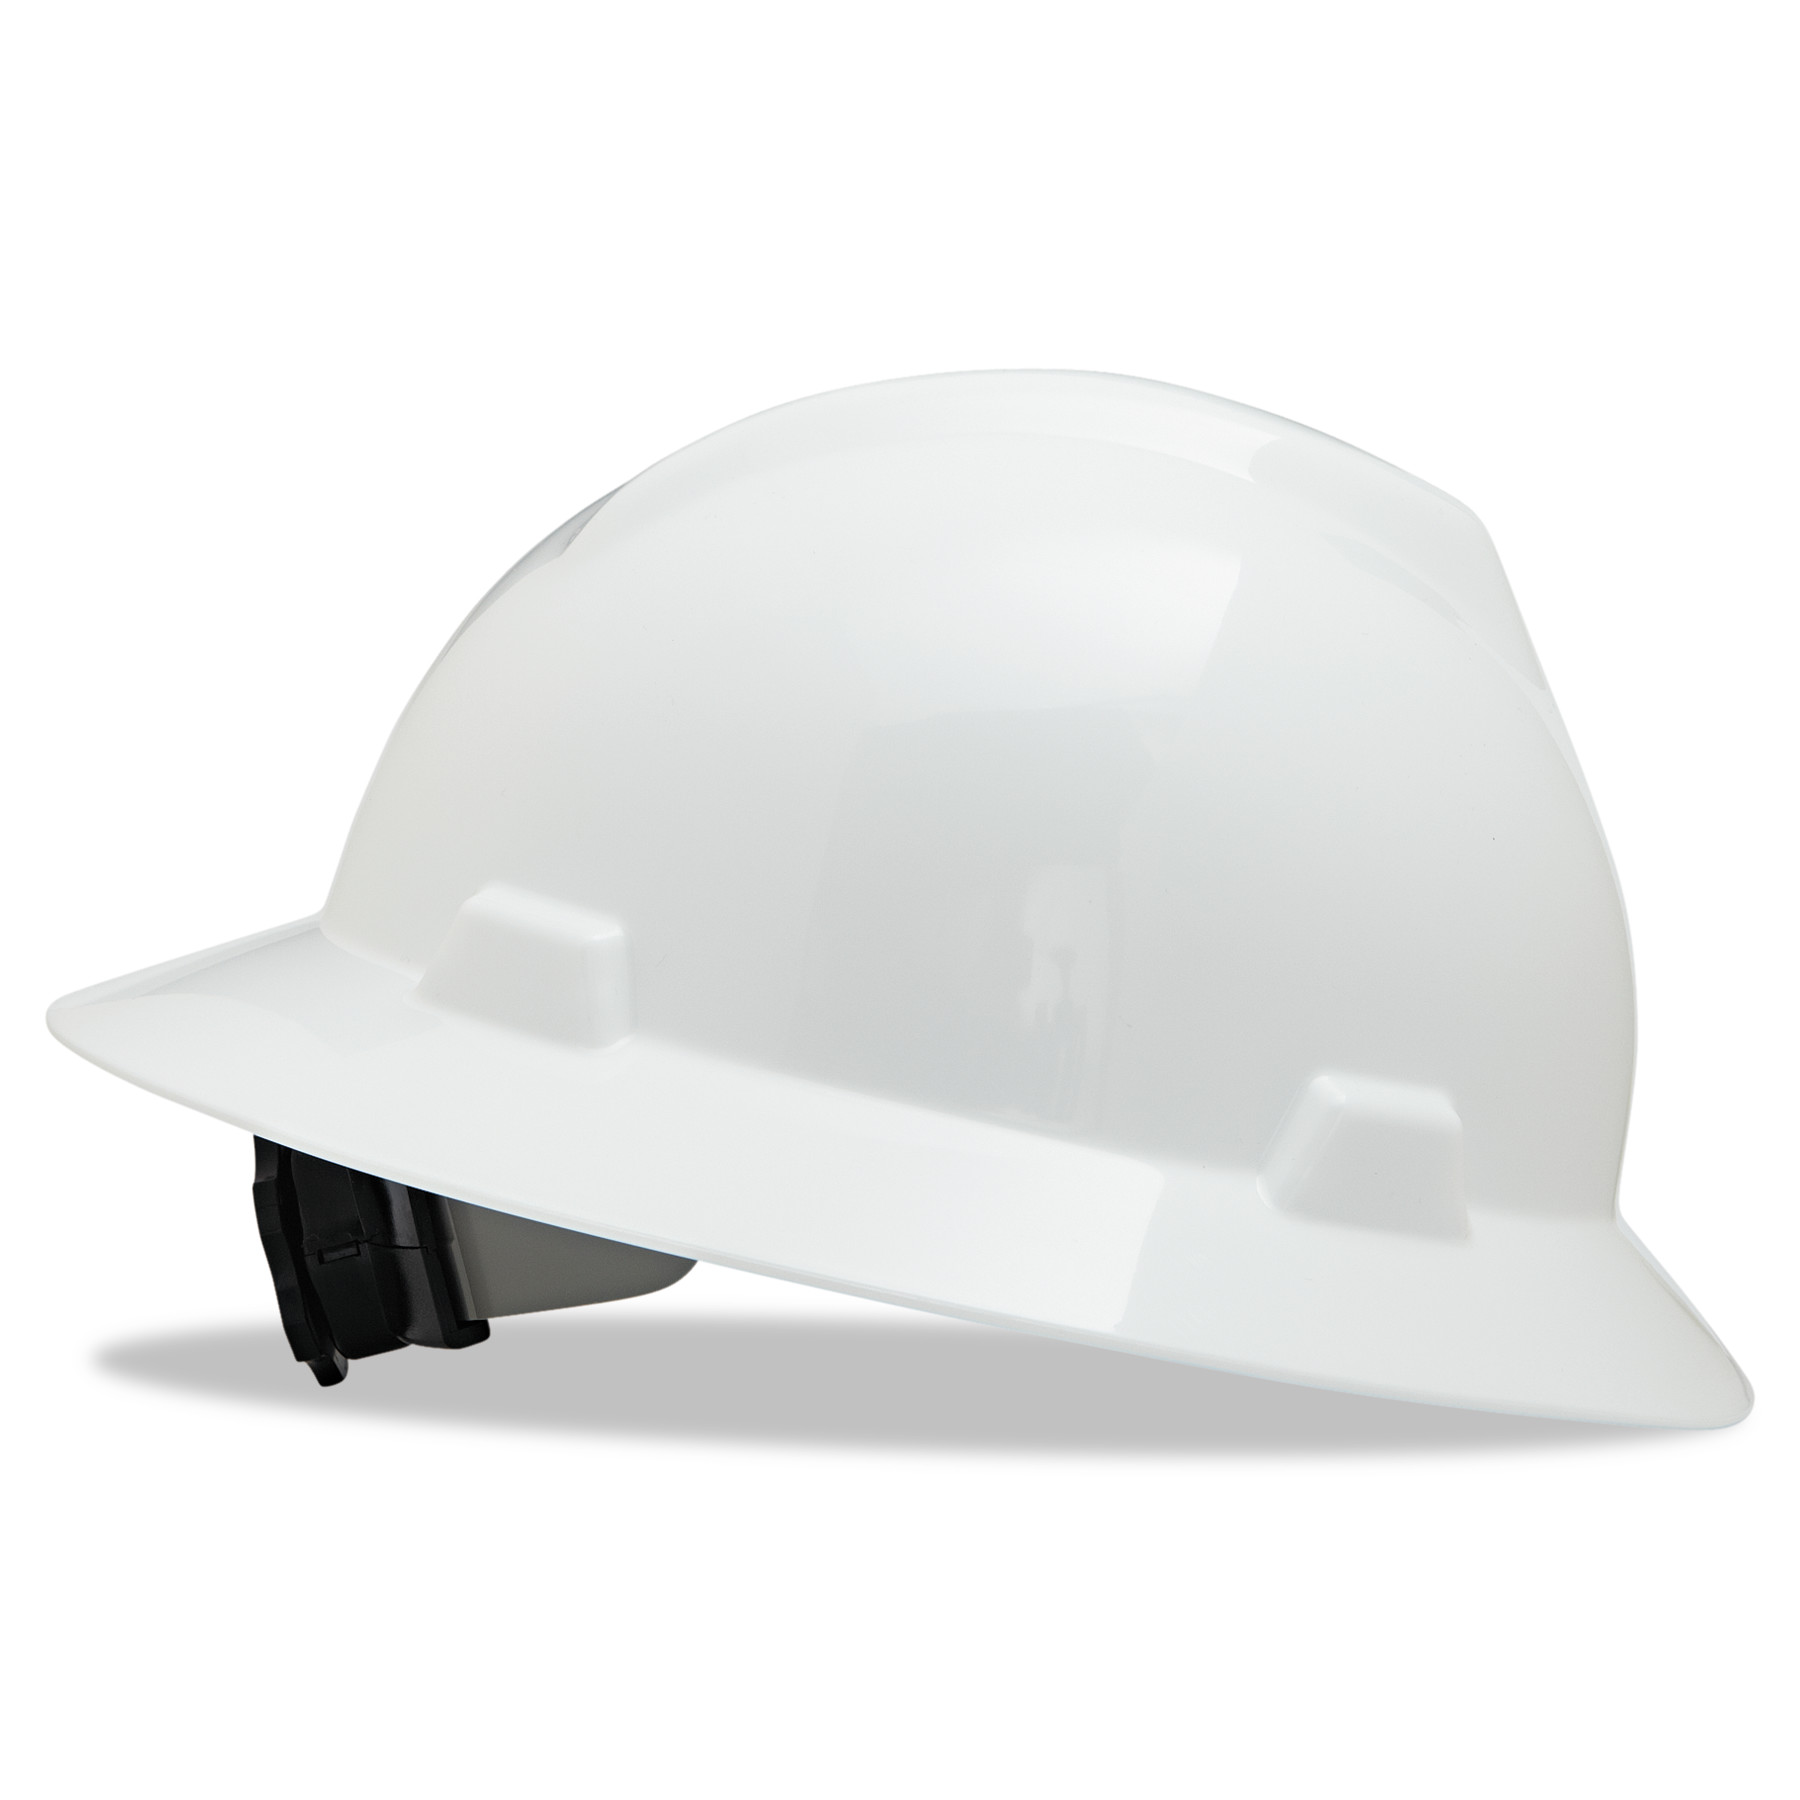 MSA V-Gard Full-Brim Hard Hats, Ratchet Suspension, Size 6 1 2 8, White by SAFETY WORKS